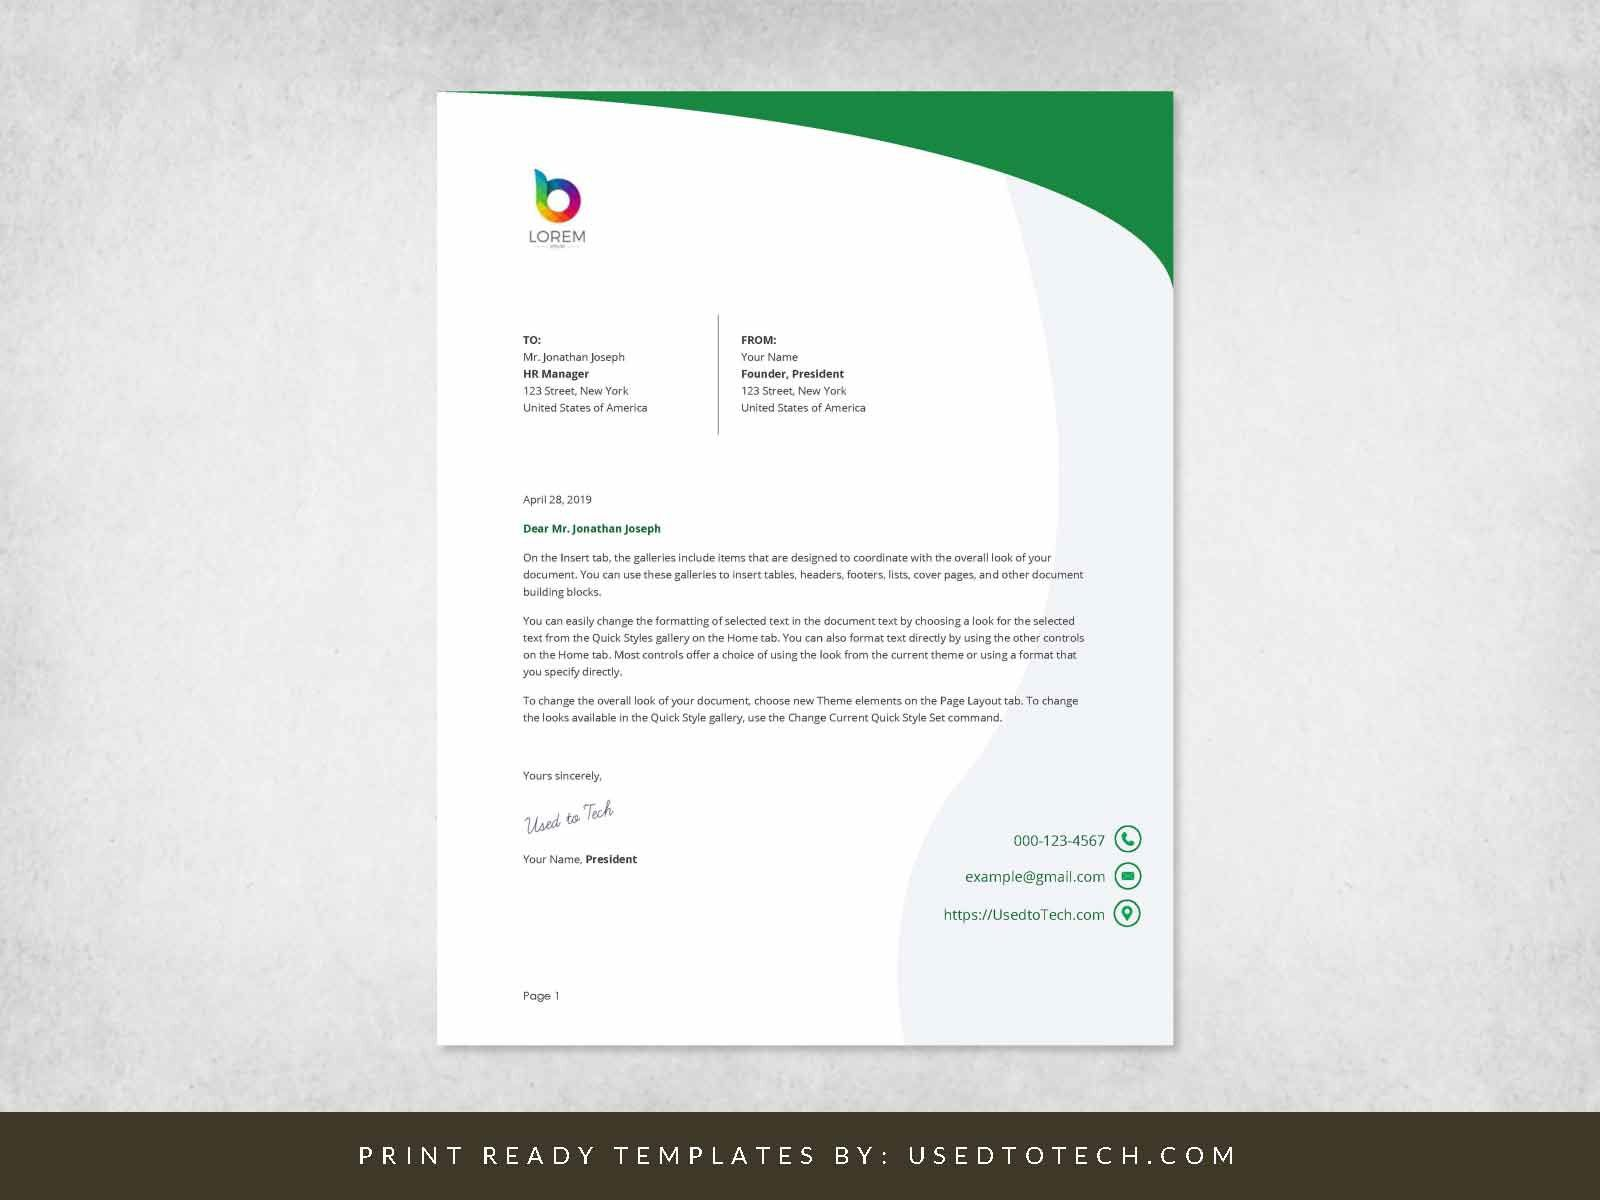 000 Simple Letterhead Format In M Word Free Download Photo Full